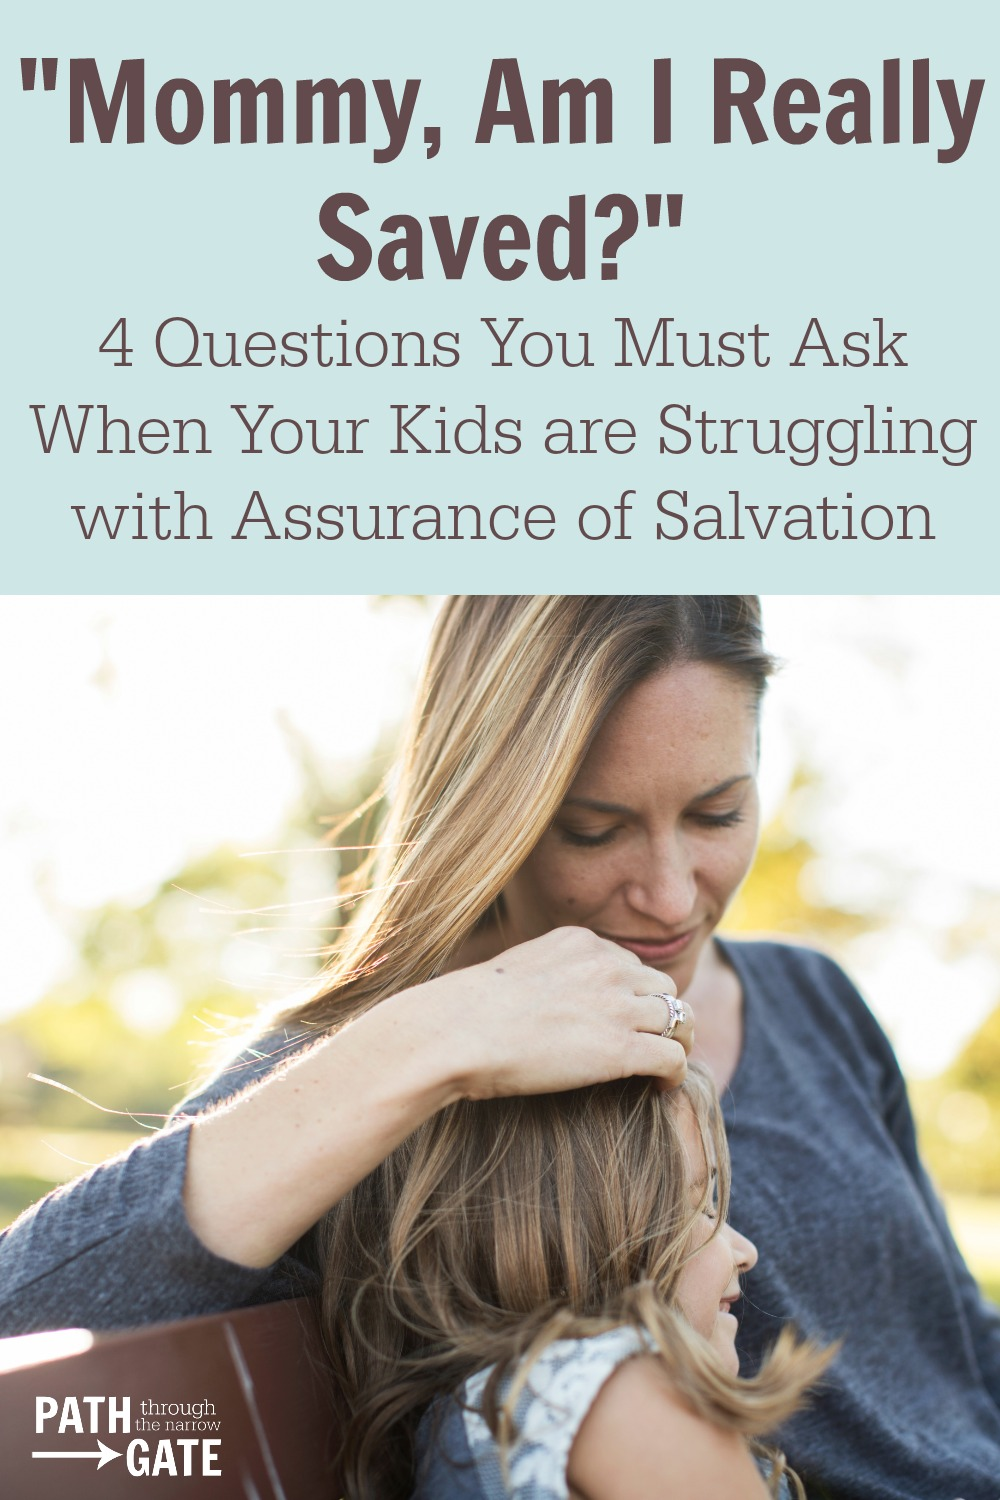 Have your children ever struggled with assurance of salvation? Here are four questions you must ask them when they have doubts about their salvation.|Path Through the Narrow Gate